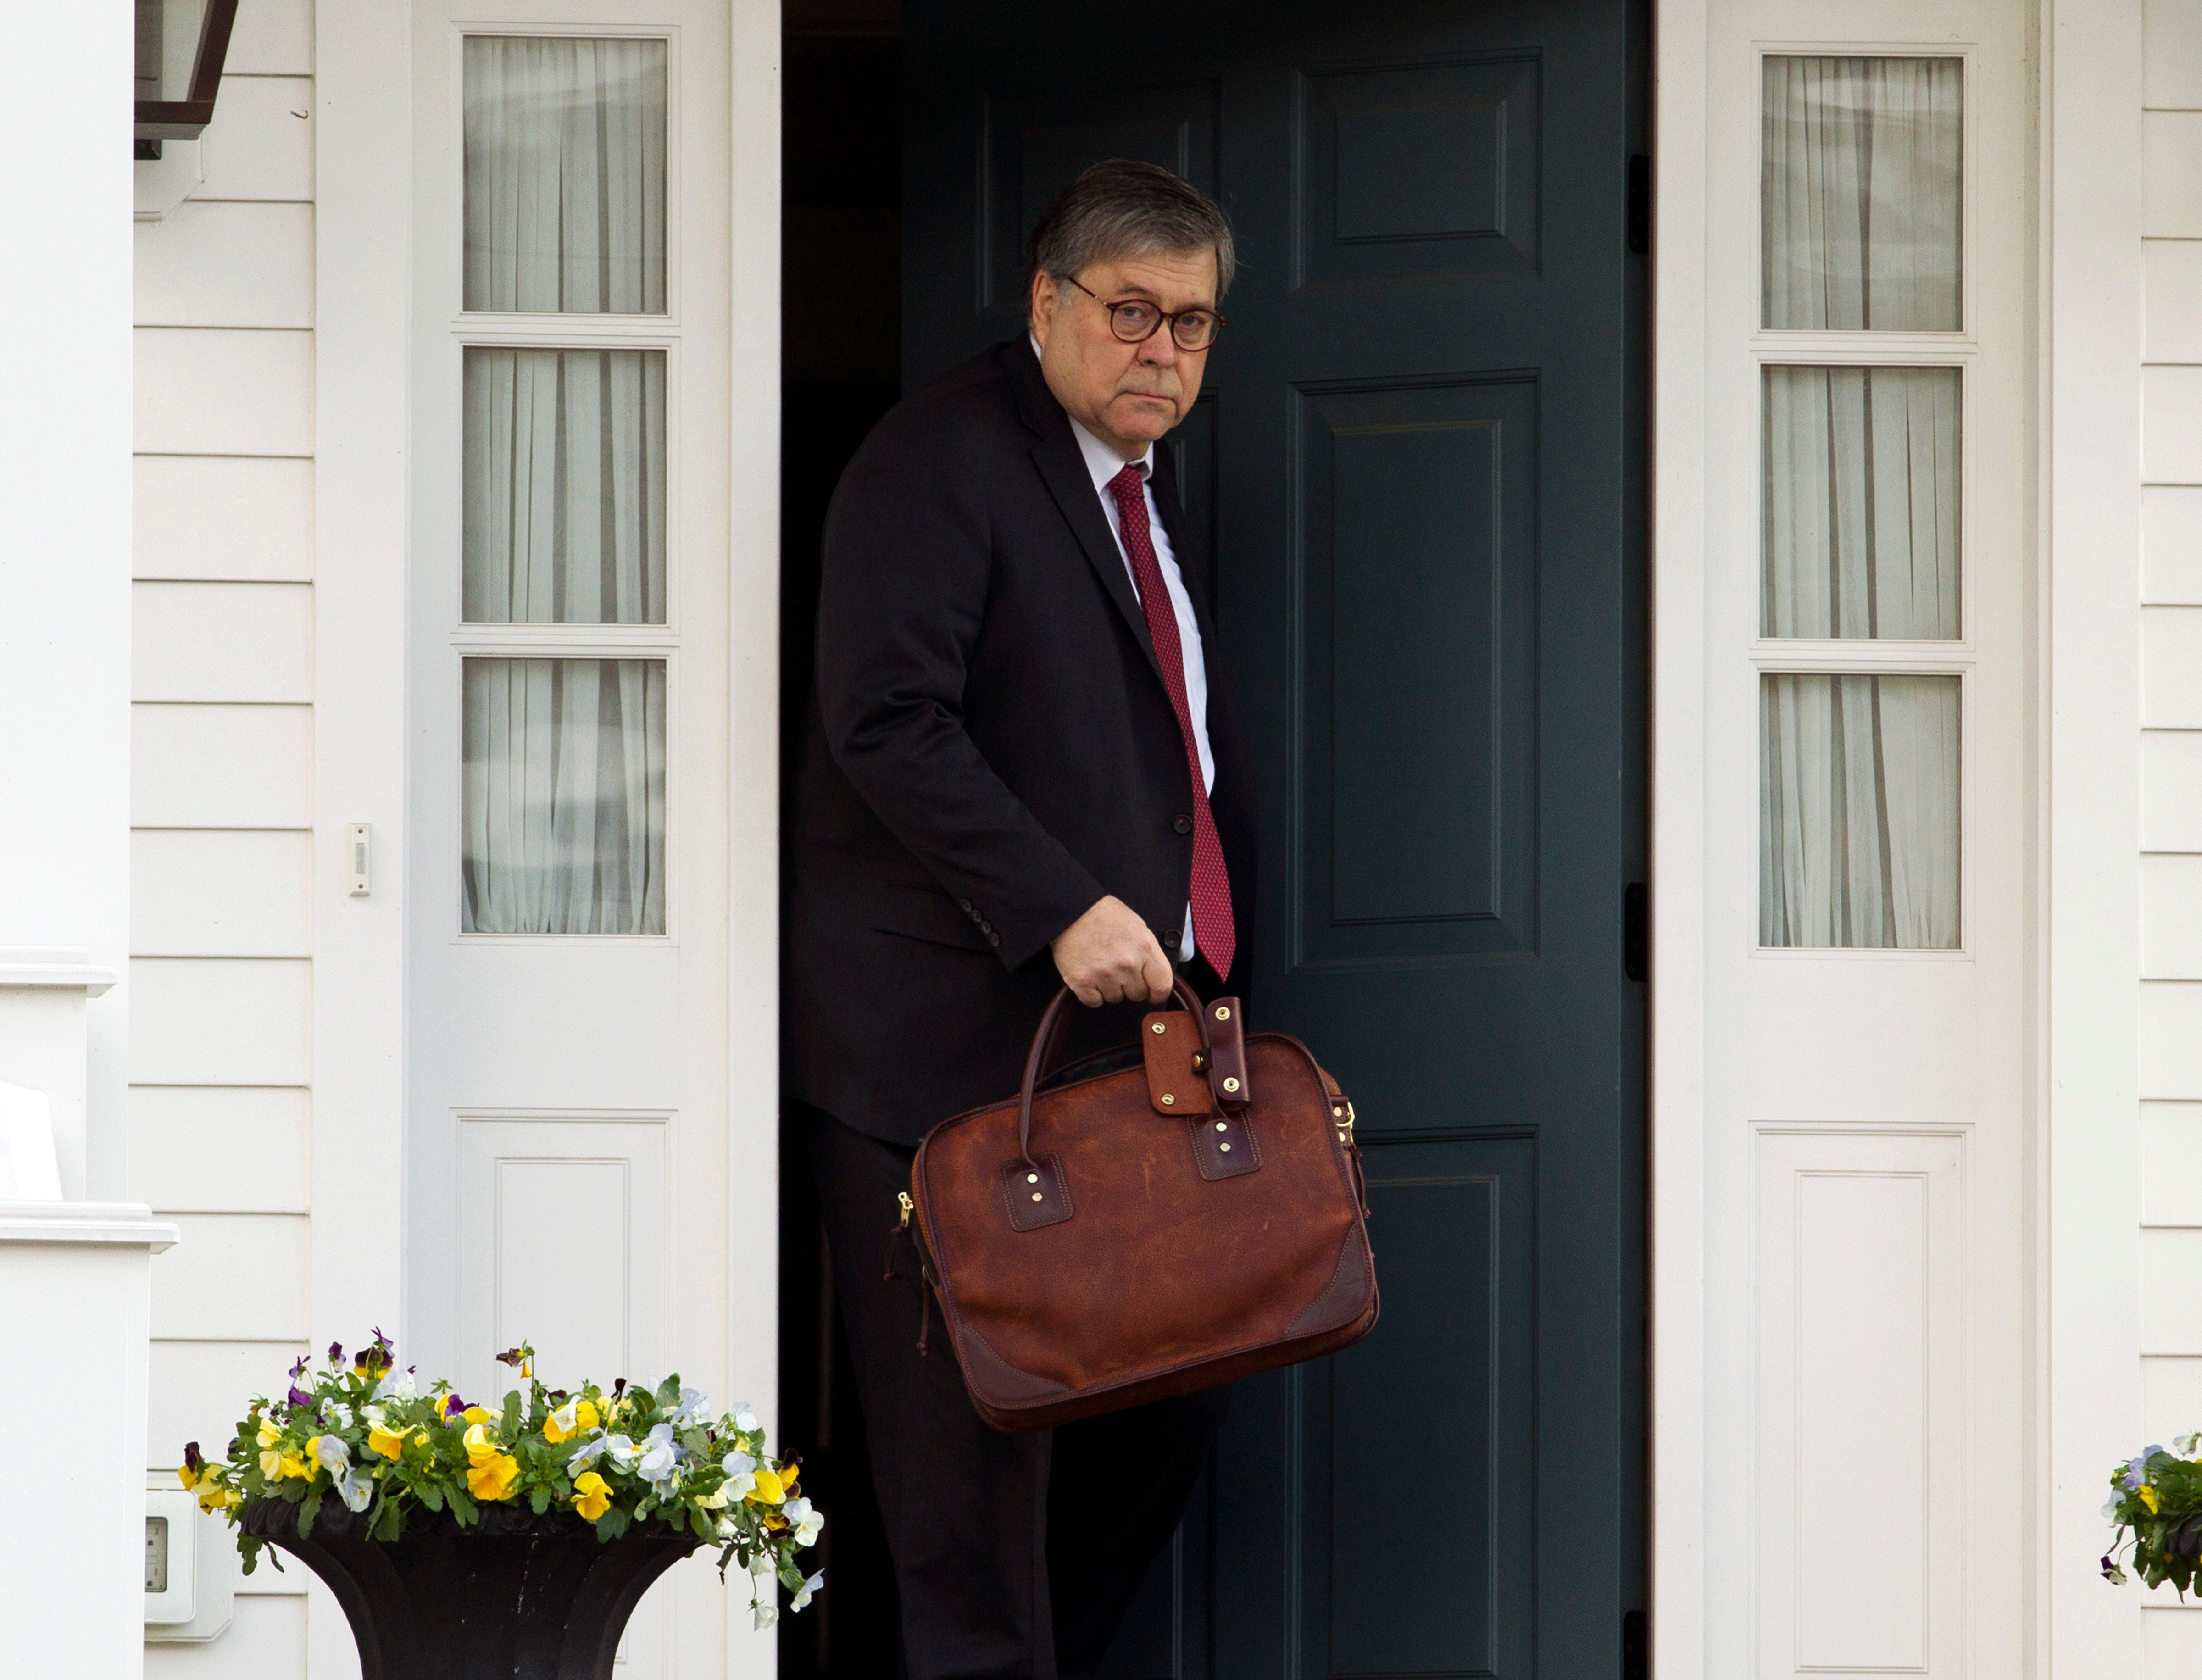 Attorney General William Barr leaves his home in McLean, Va., on Friday, March 22, 2019. Special Counsel Robert Mueller is expected to present a report to the Justice Department any day now outlining the findings of his nearly two-year investigation into Russian election meddling, possible collusion with Trump campaign officials and possible obstruction of justice by Trump . (AP Photo/Jose Luis Magana)